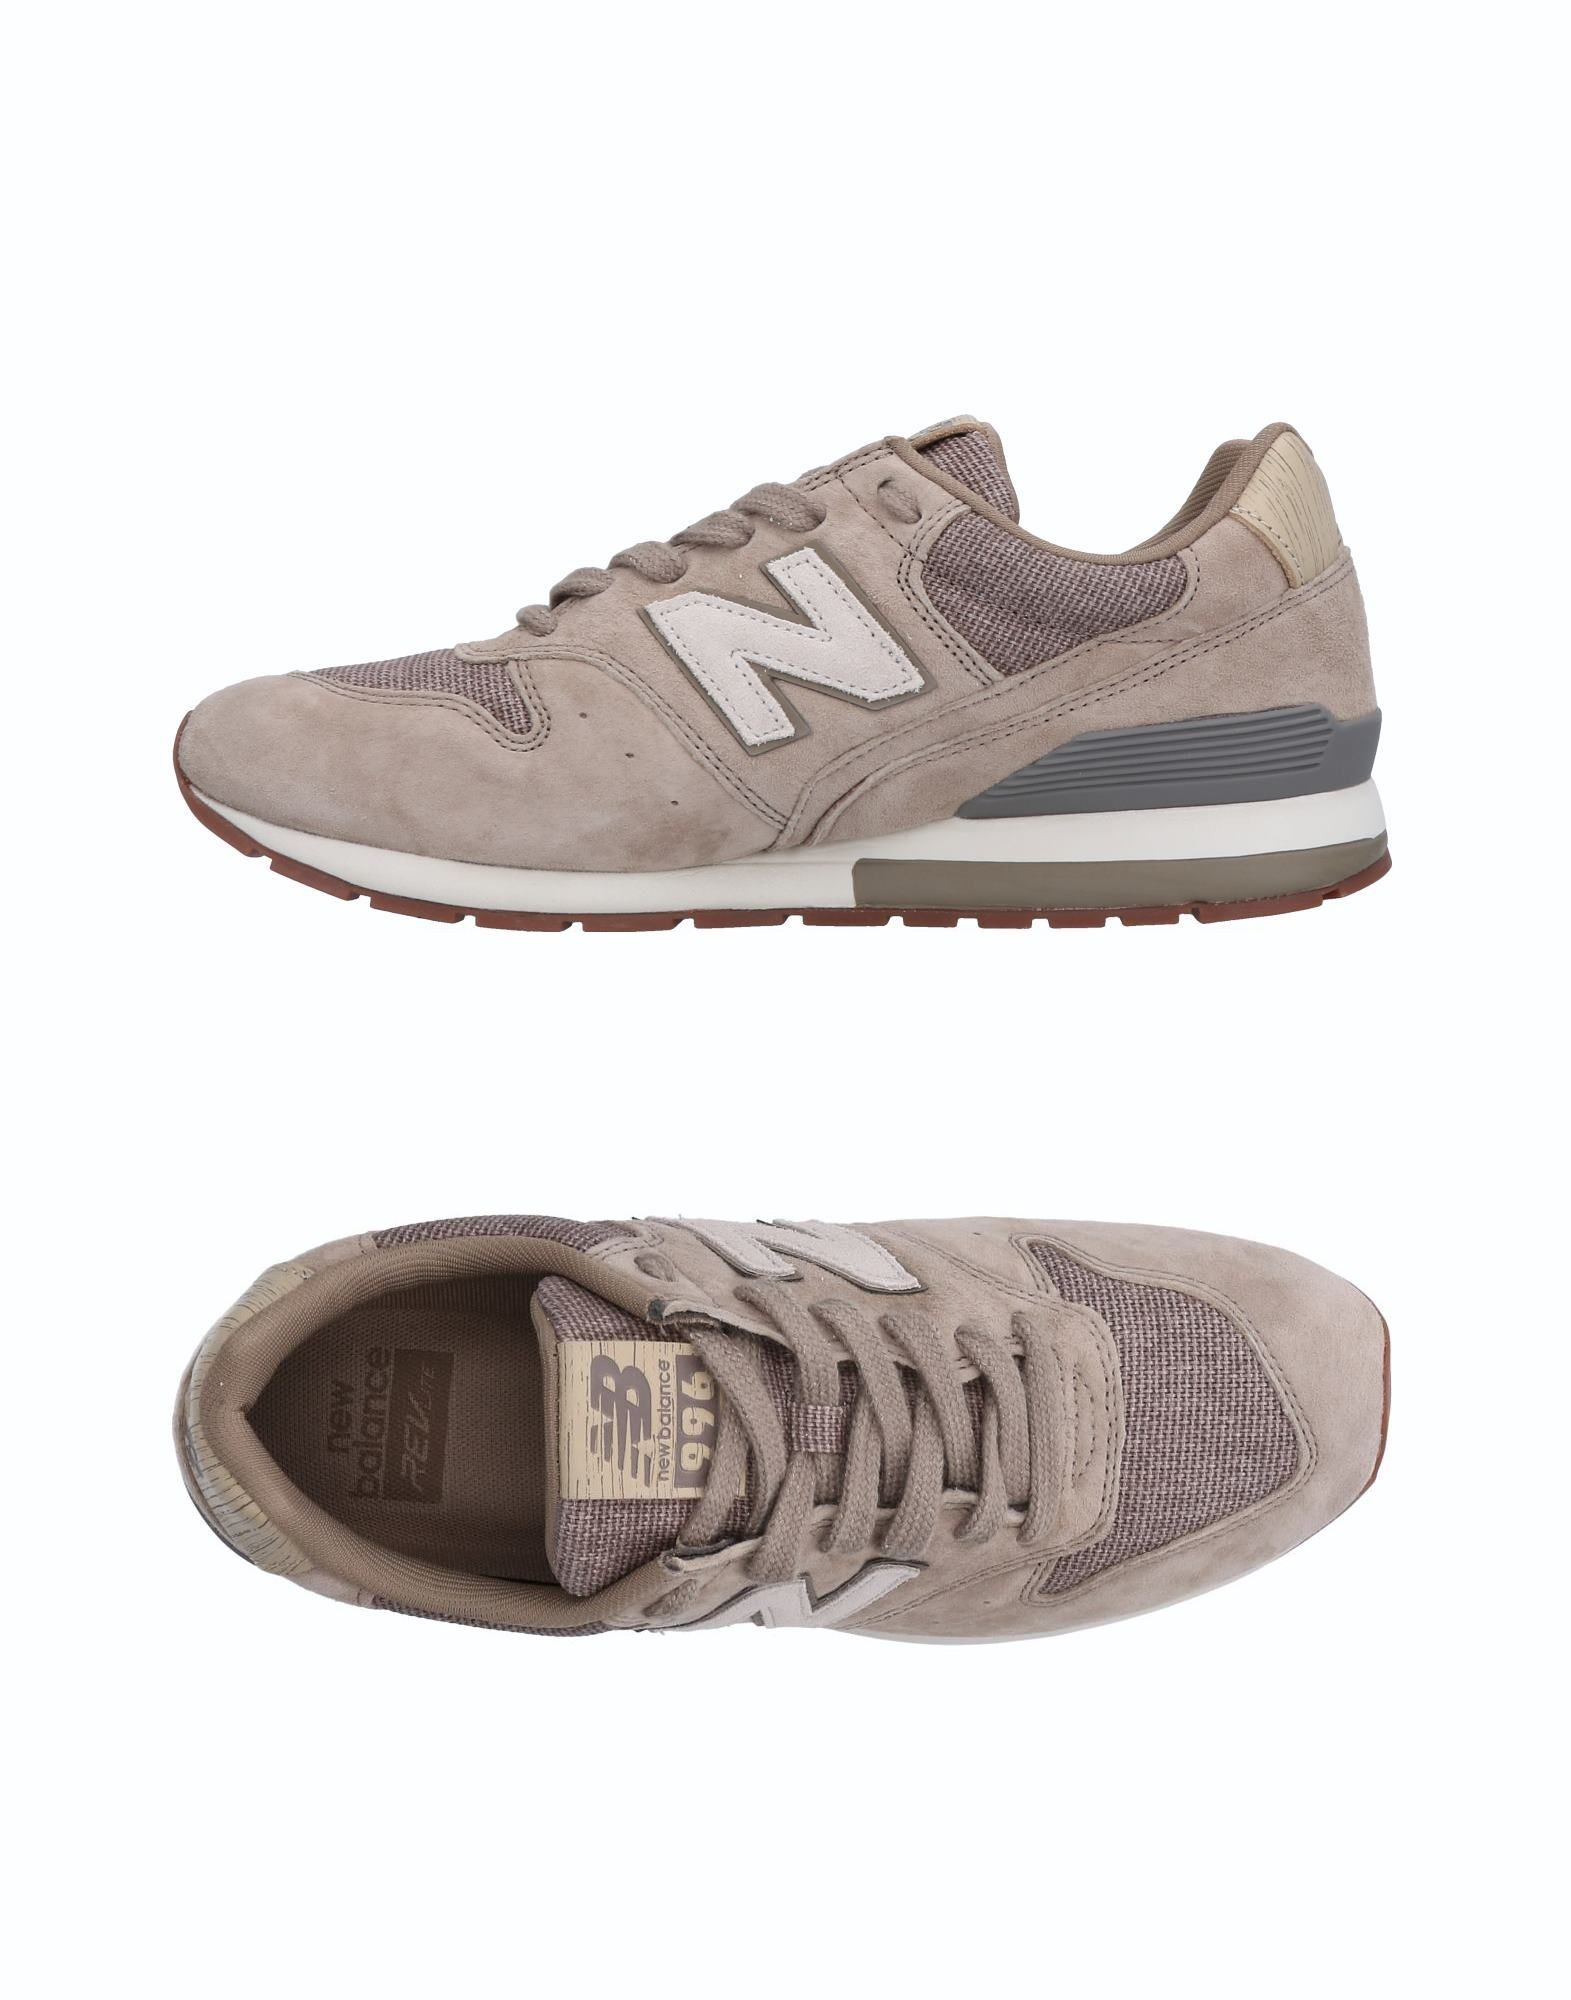 New Balance Balance Sneakers - Men New Balance Balance Sneakers online on  United Kingdom - 11503267GD ad19e8